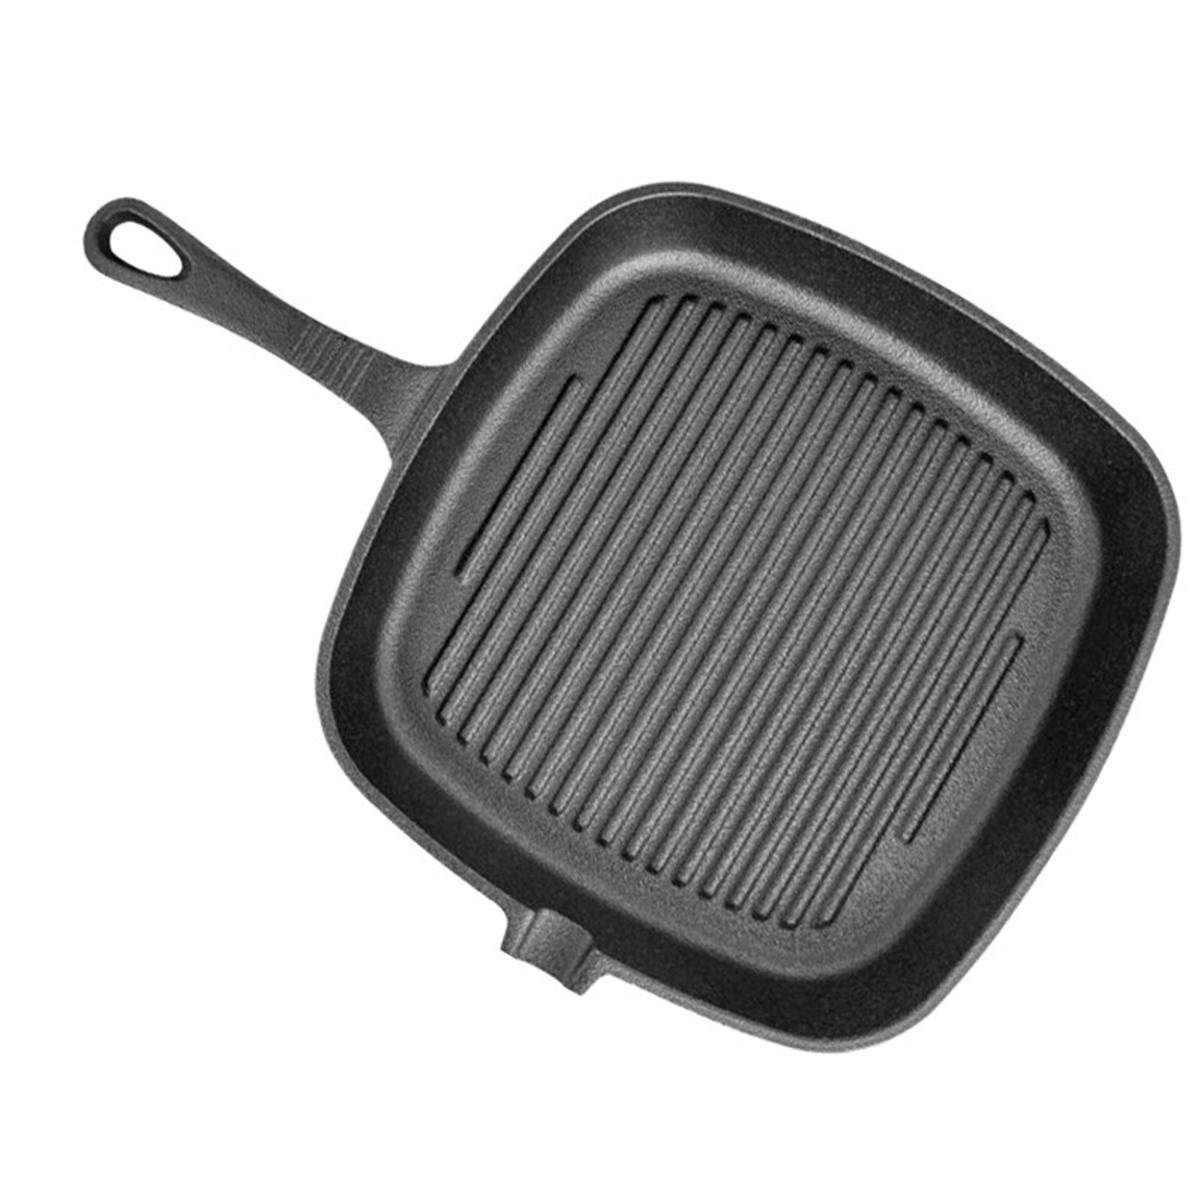 Grill Frying Pan Non Stick Cast Iron Grill Frying Pan Griddle Bbq Kitchen